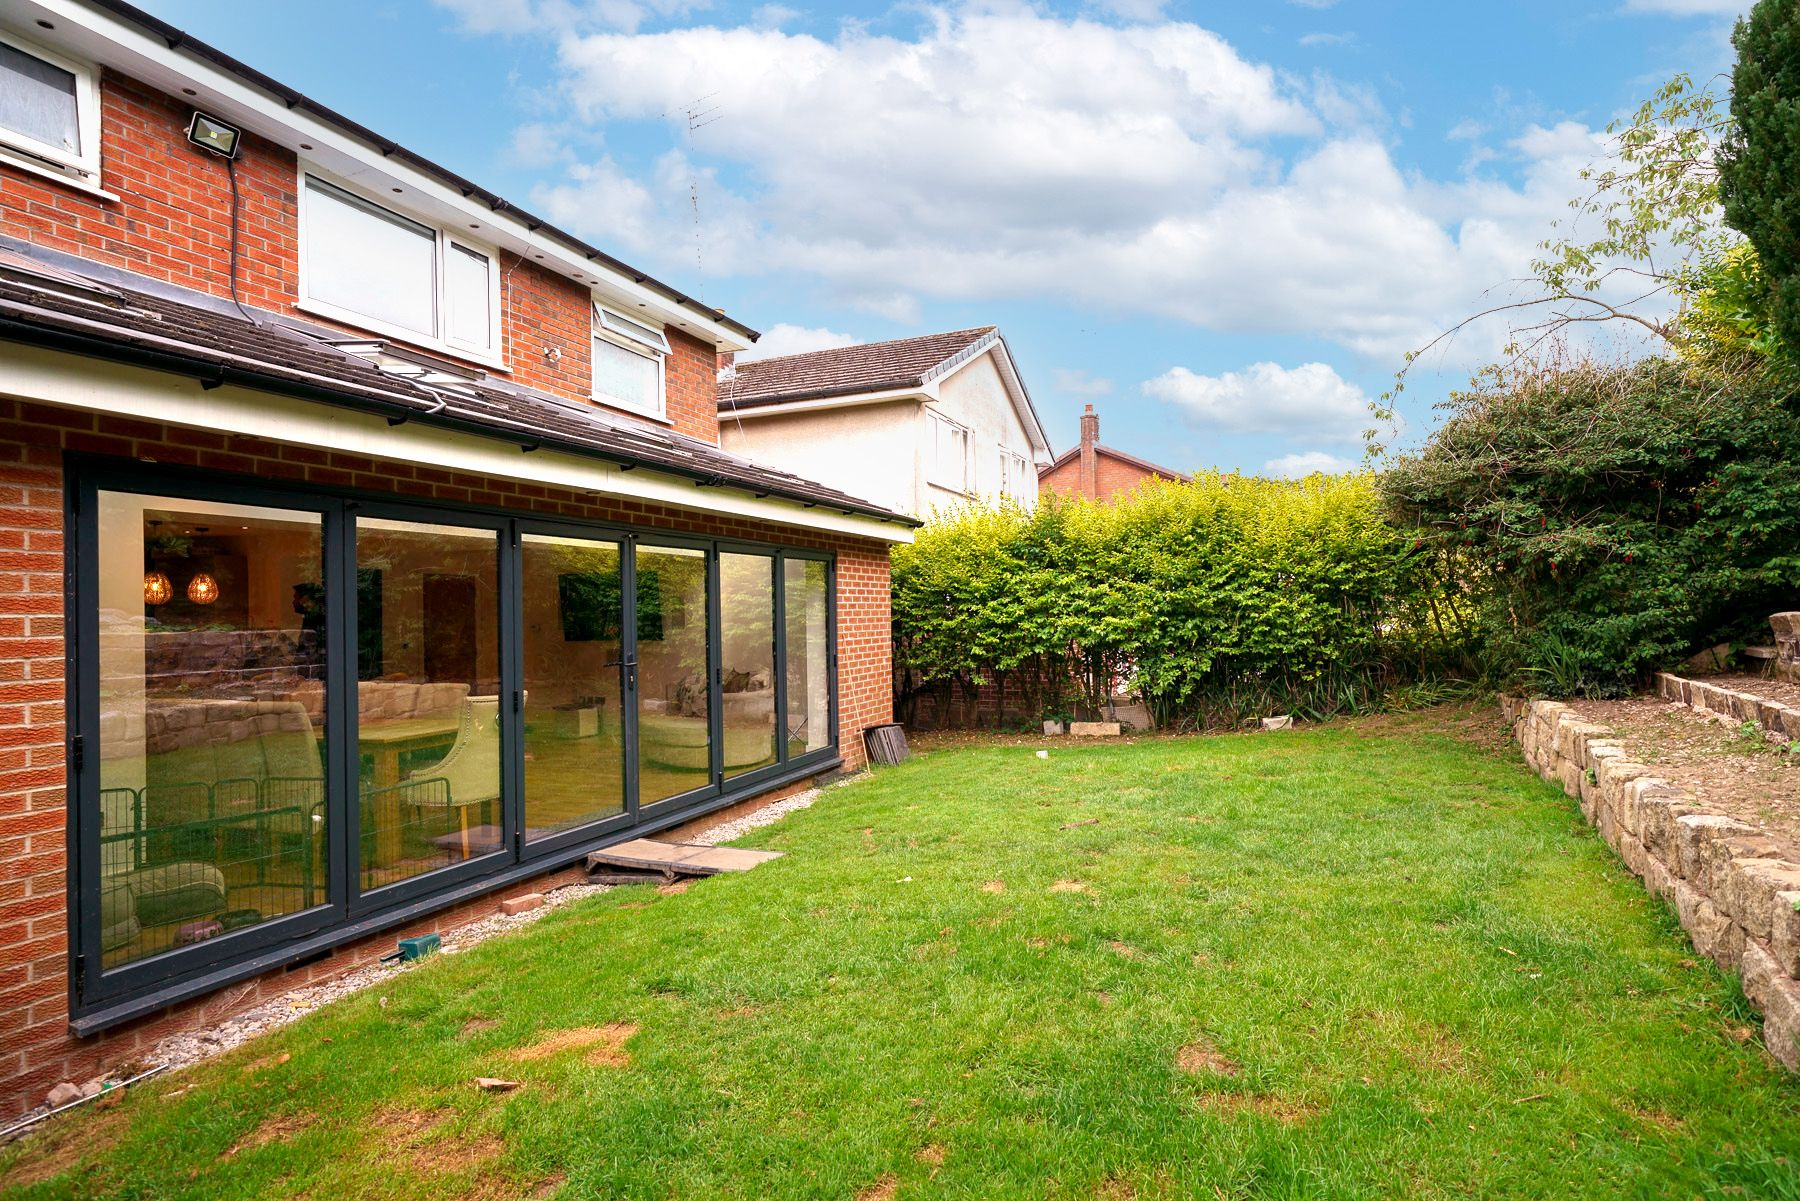 4 bedroom detached house SSTC in Bolton - Photograph 51